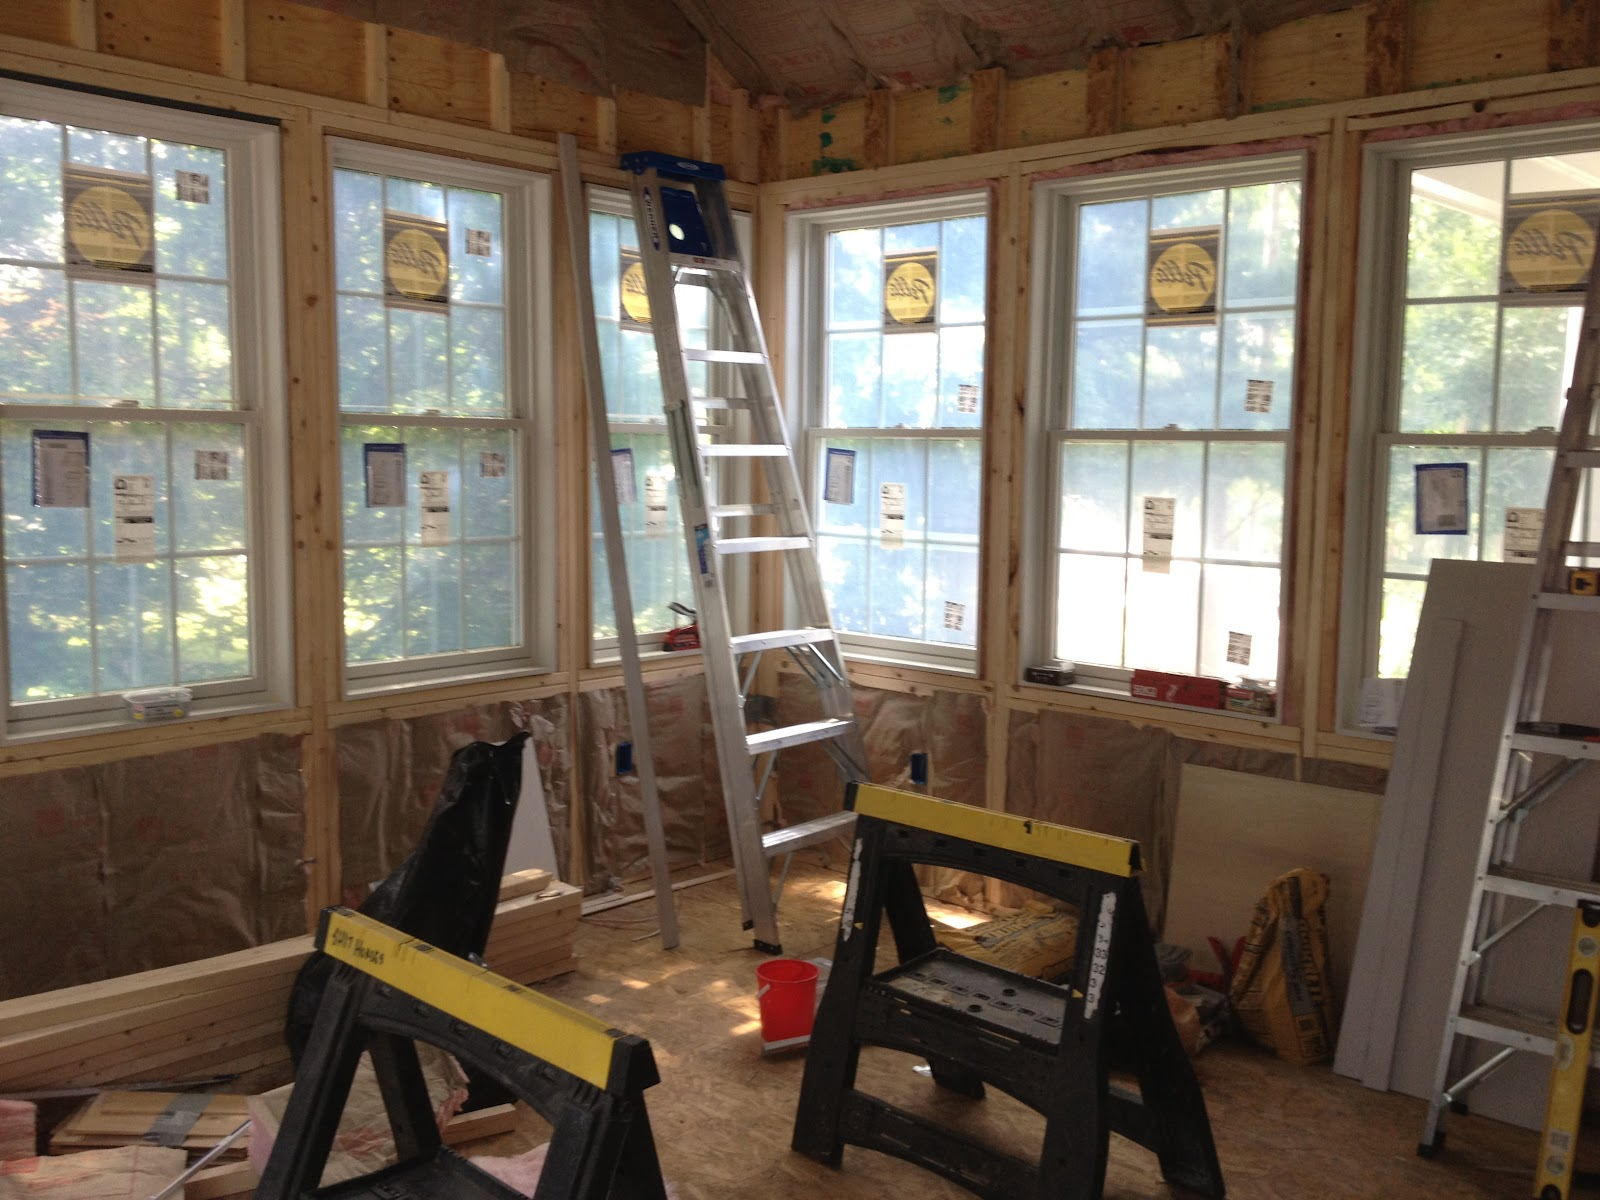 three season porch windows full length once the drywall is complete we will install bead board ceiling and trim out all of windows here are some progress photos oleary season room renovation insulation sign off